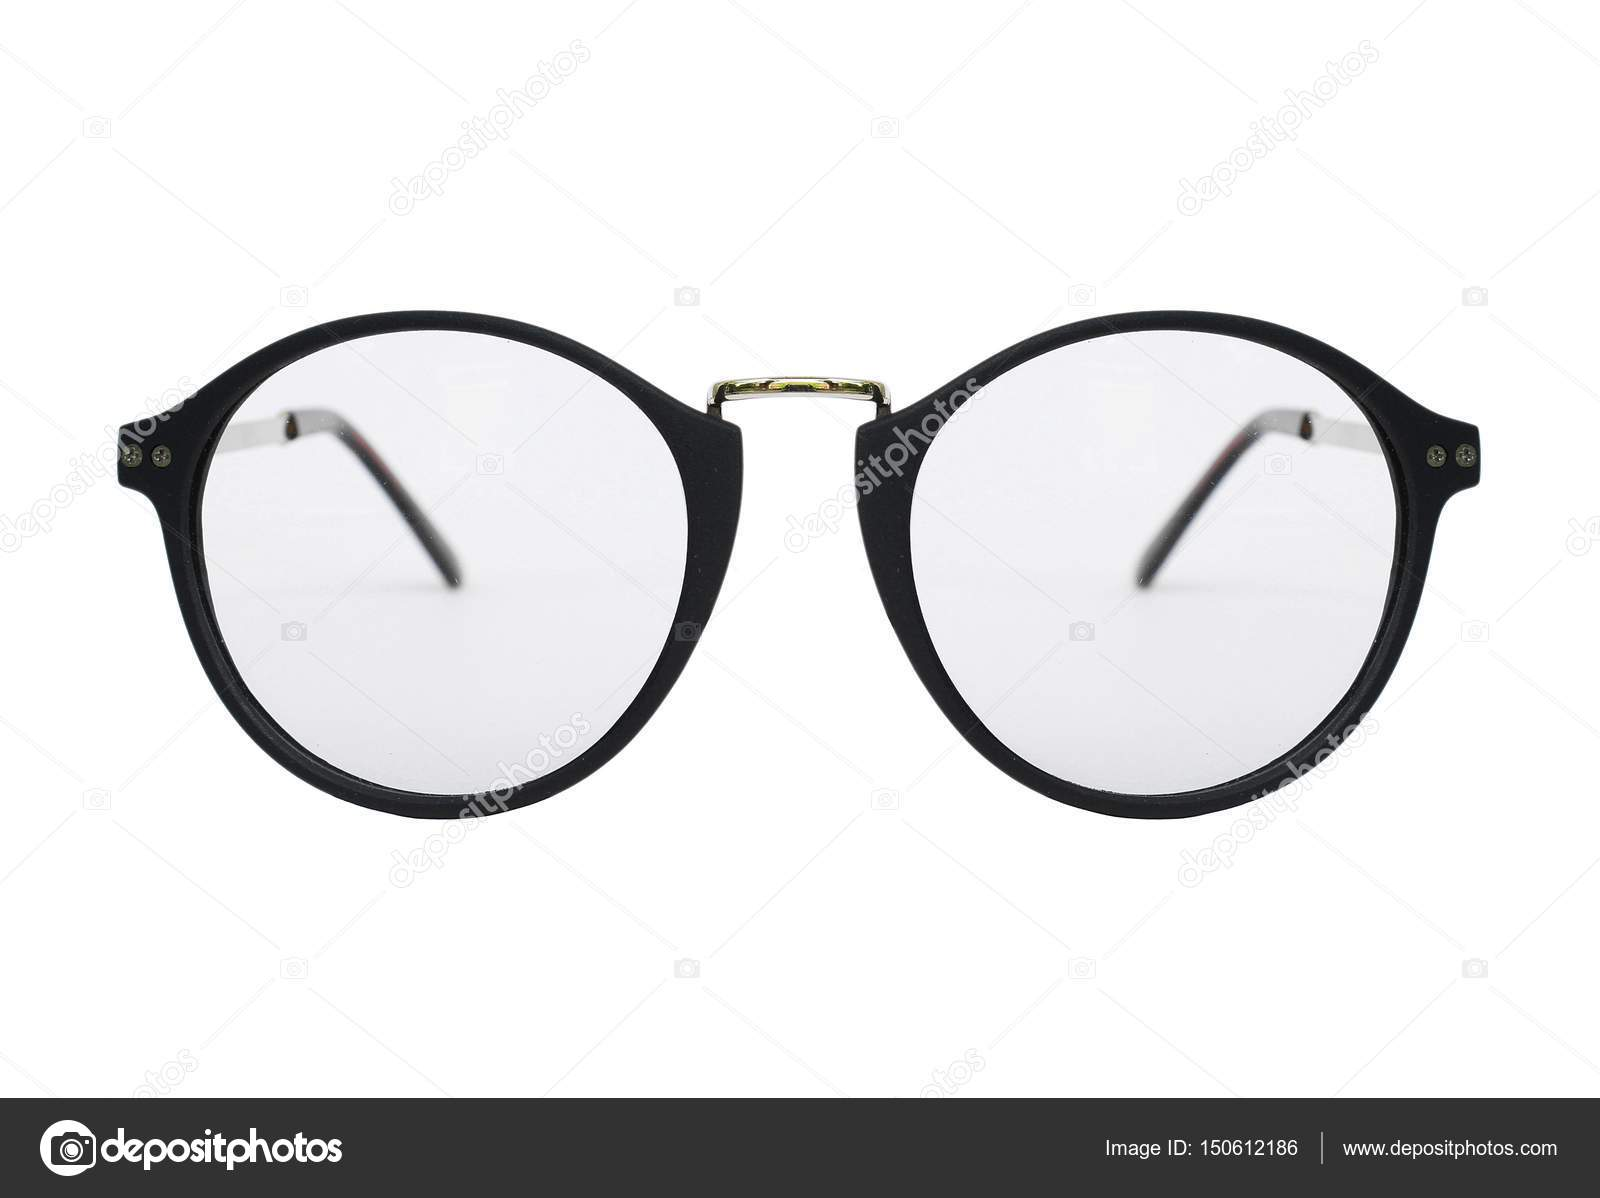 You vintage style eye glasses final, sorry